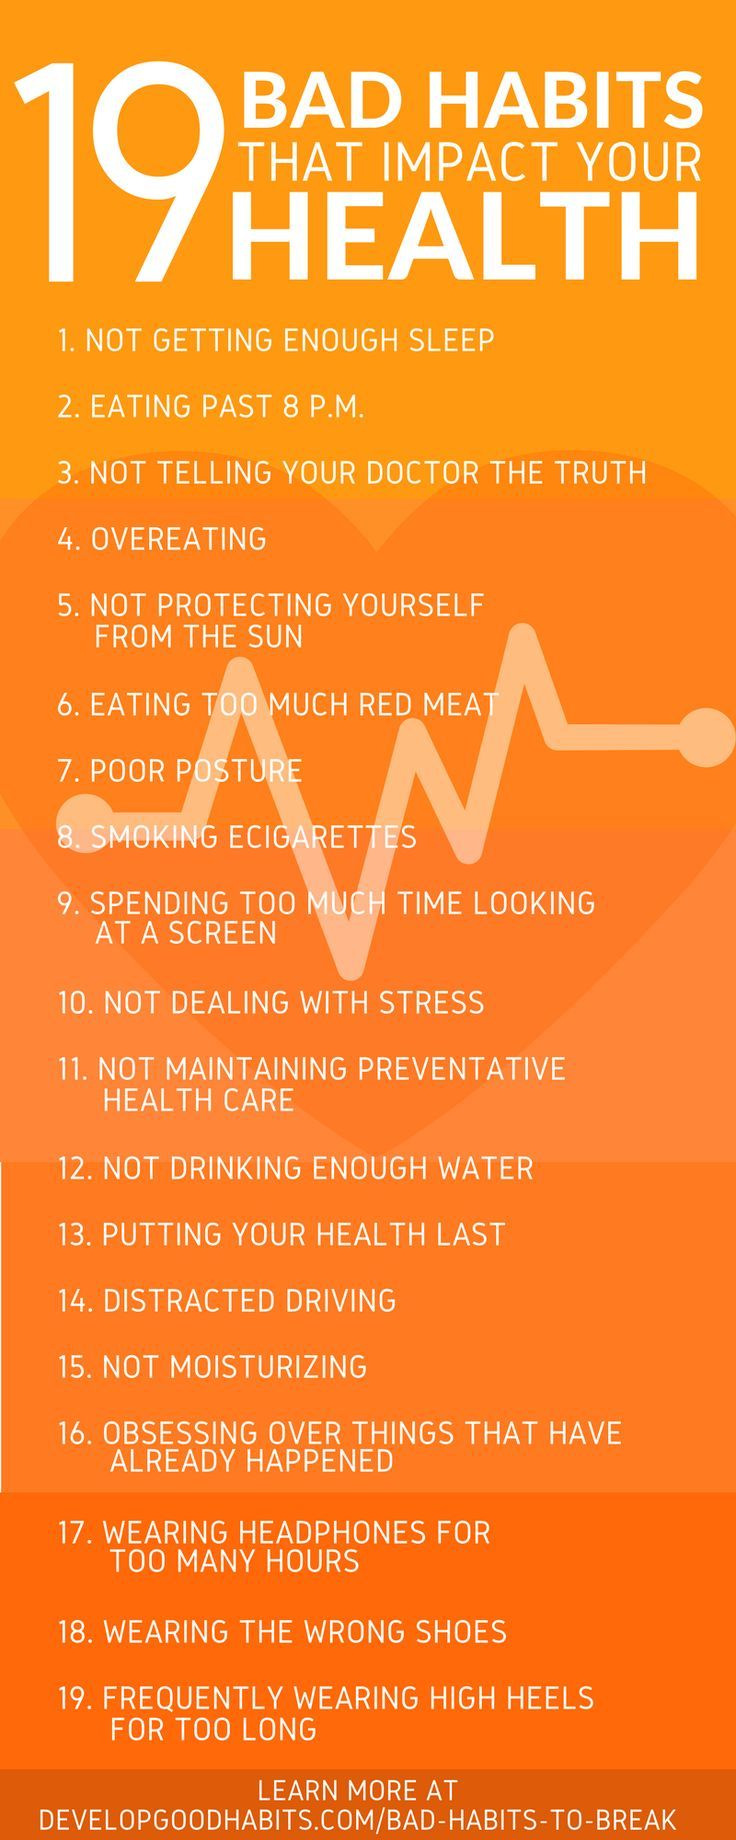 Bad Habits that impact your health. These 19 bad habits are all to common examples of habits that run contrary to healthy living. If you want to live long and healthy life. Avoid these 19 bad habits. See more bad habits in the full list of 283 bad habits